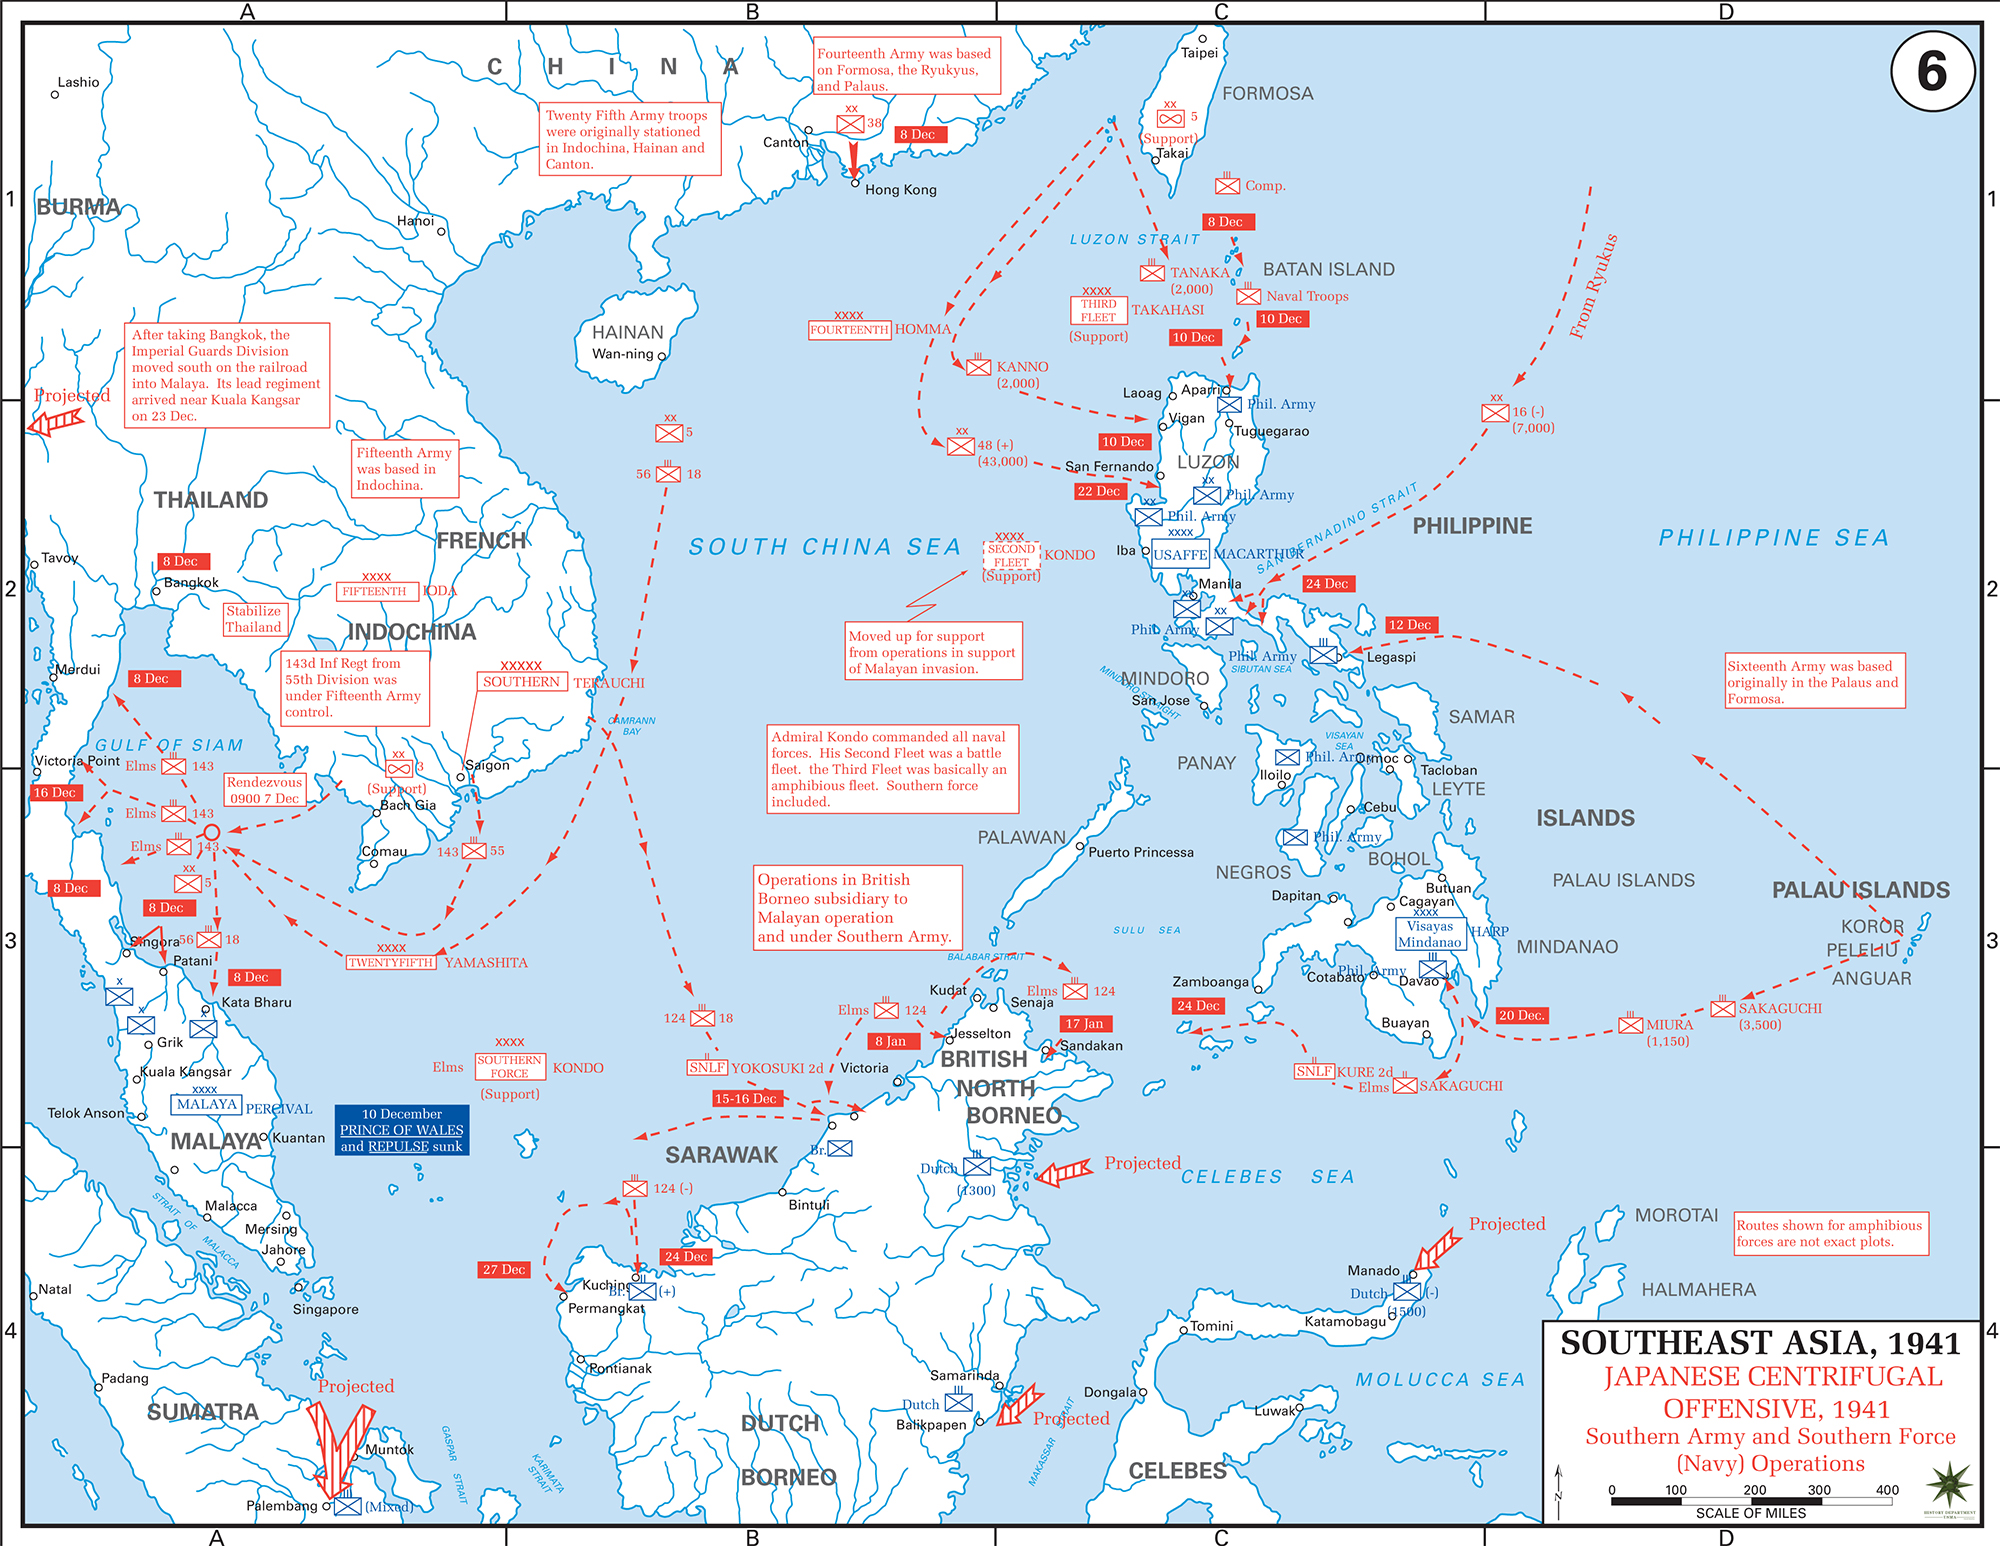 Map Of Asia During Ww2.Map Of Wwii Japanese Offensive 1941 Southeast Asia